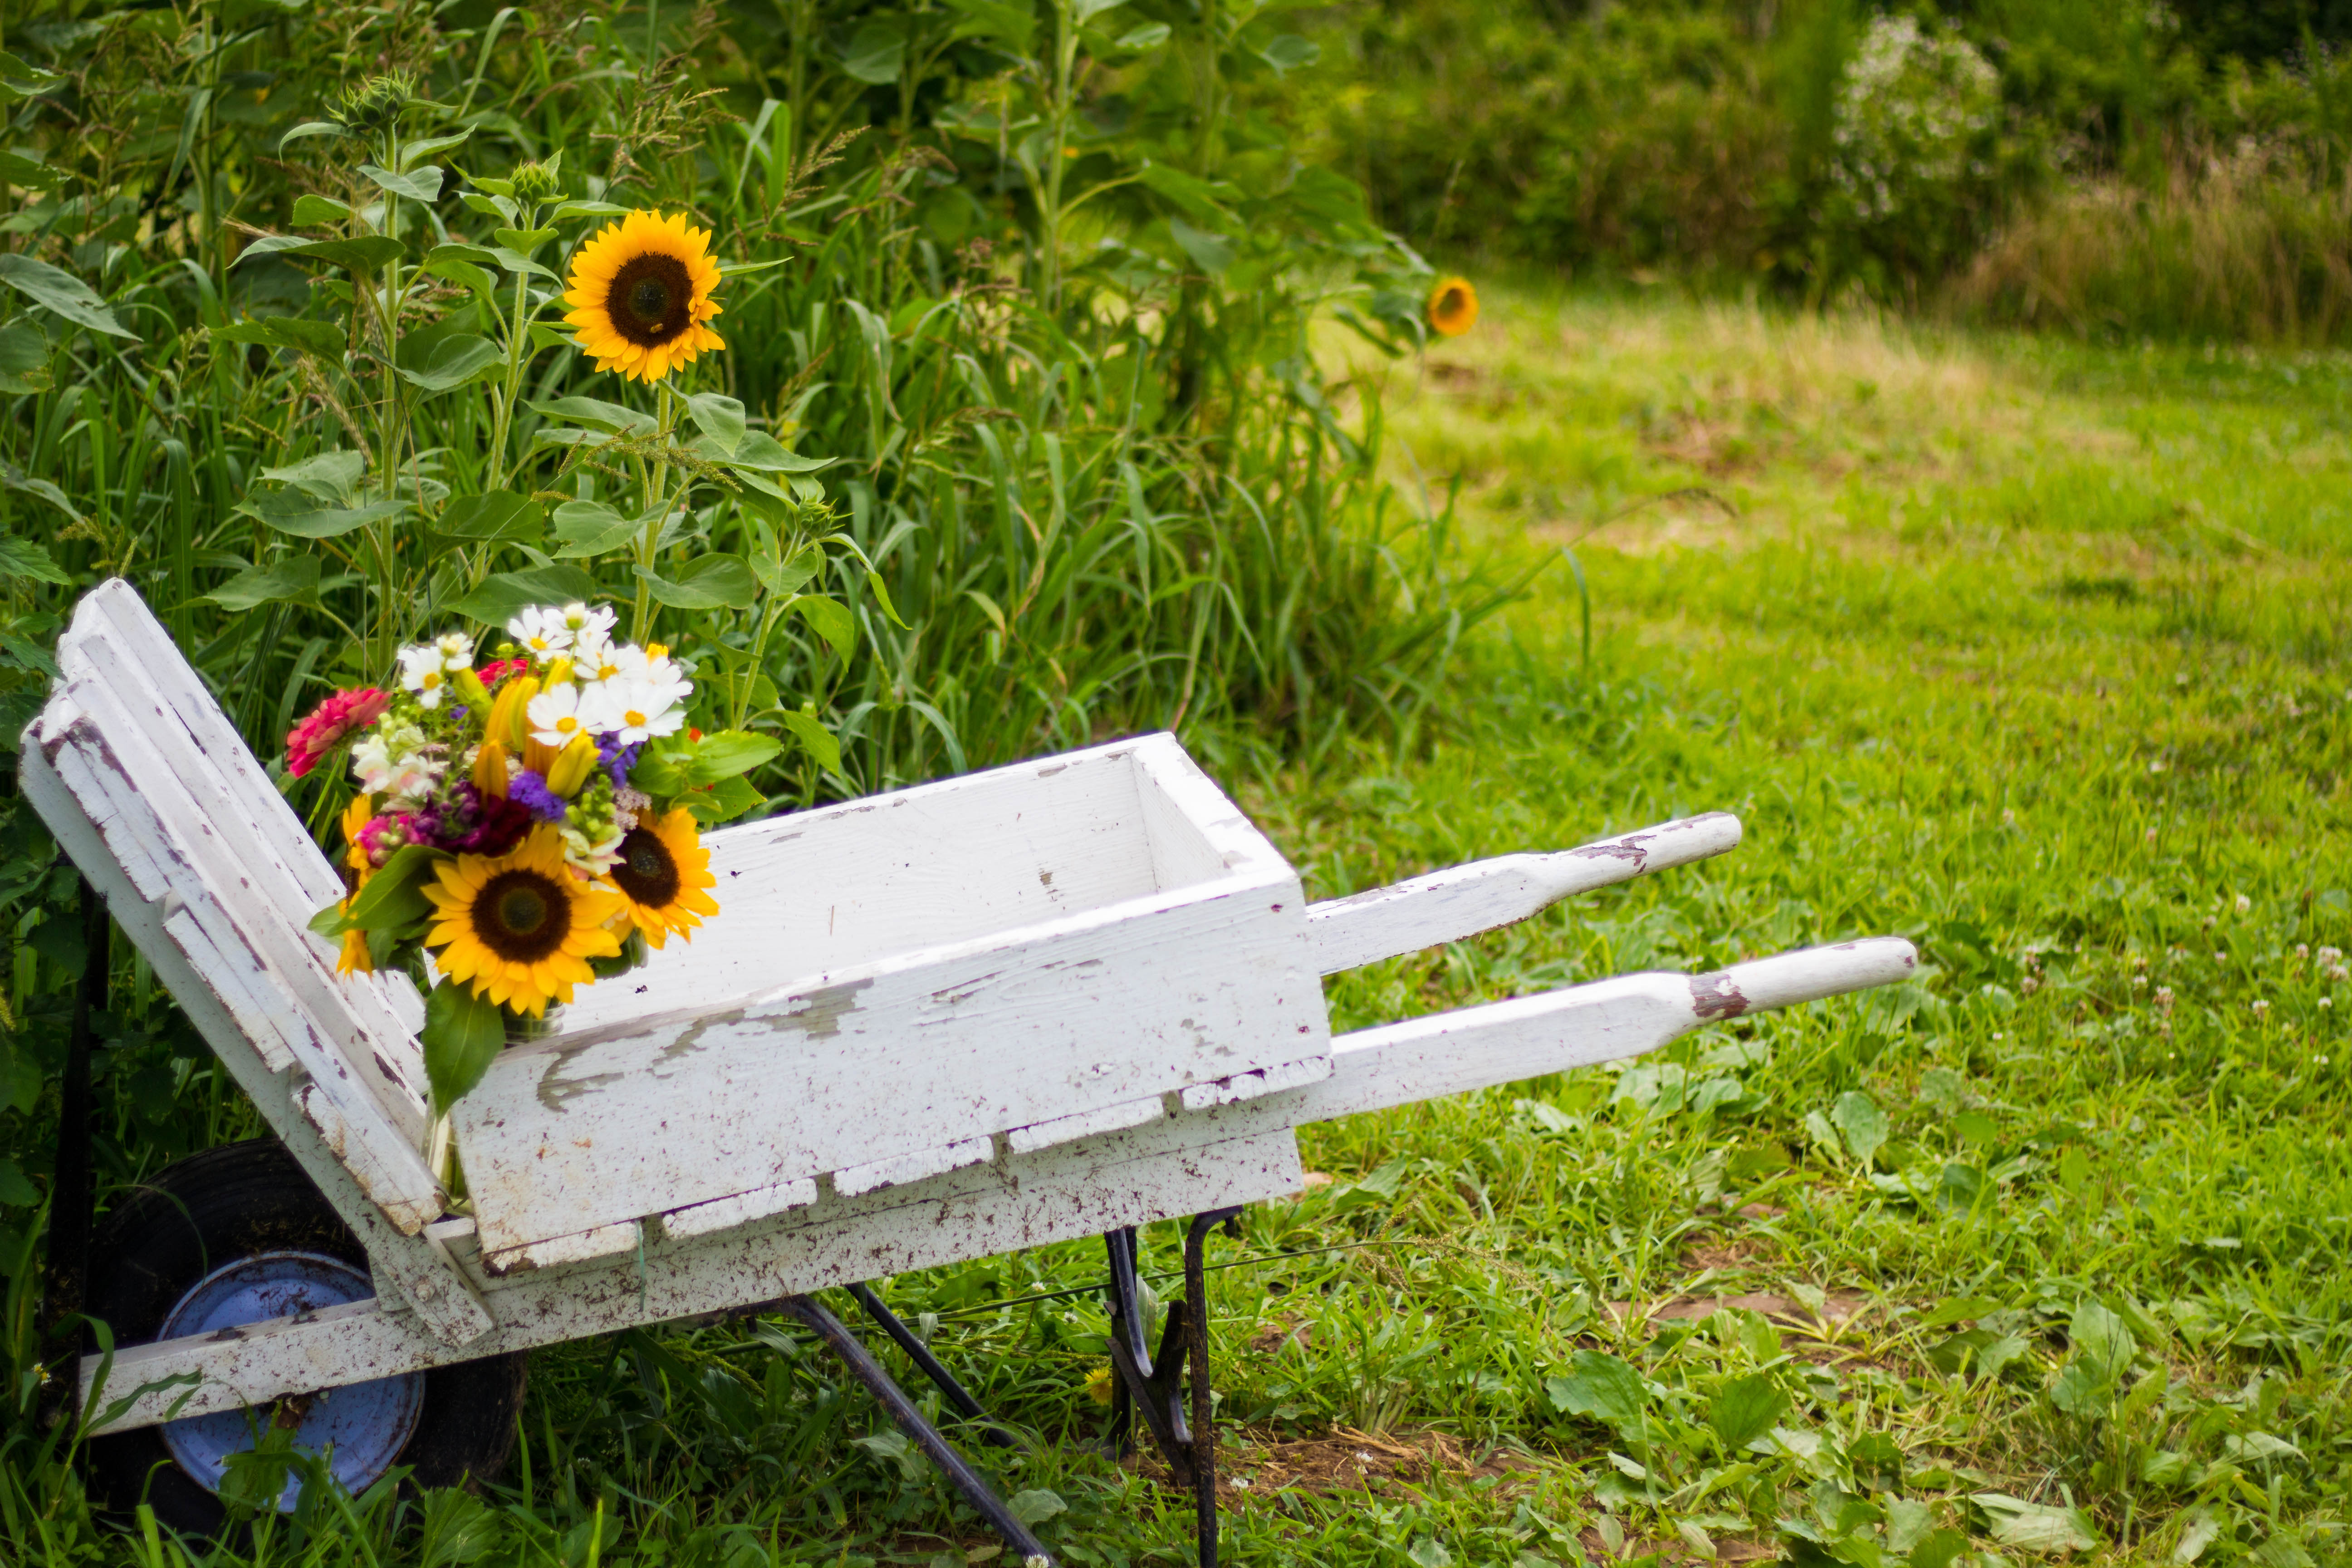 Bouquet of flowers in a wheelbarrow